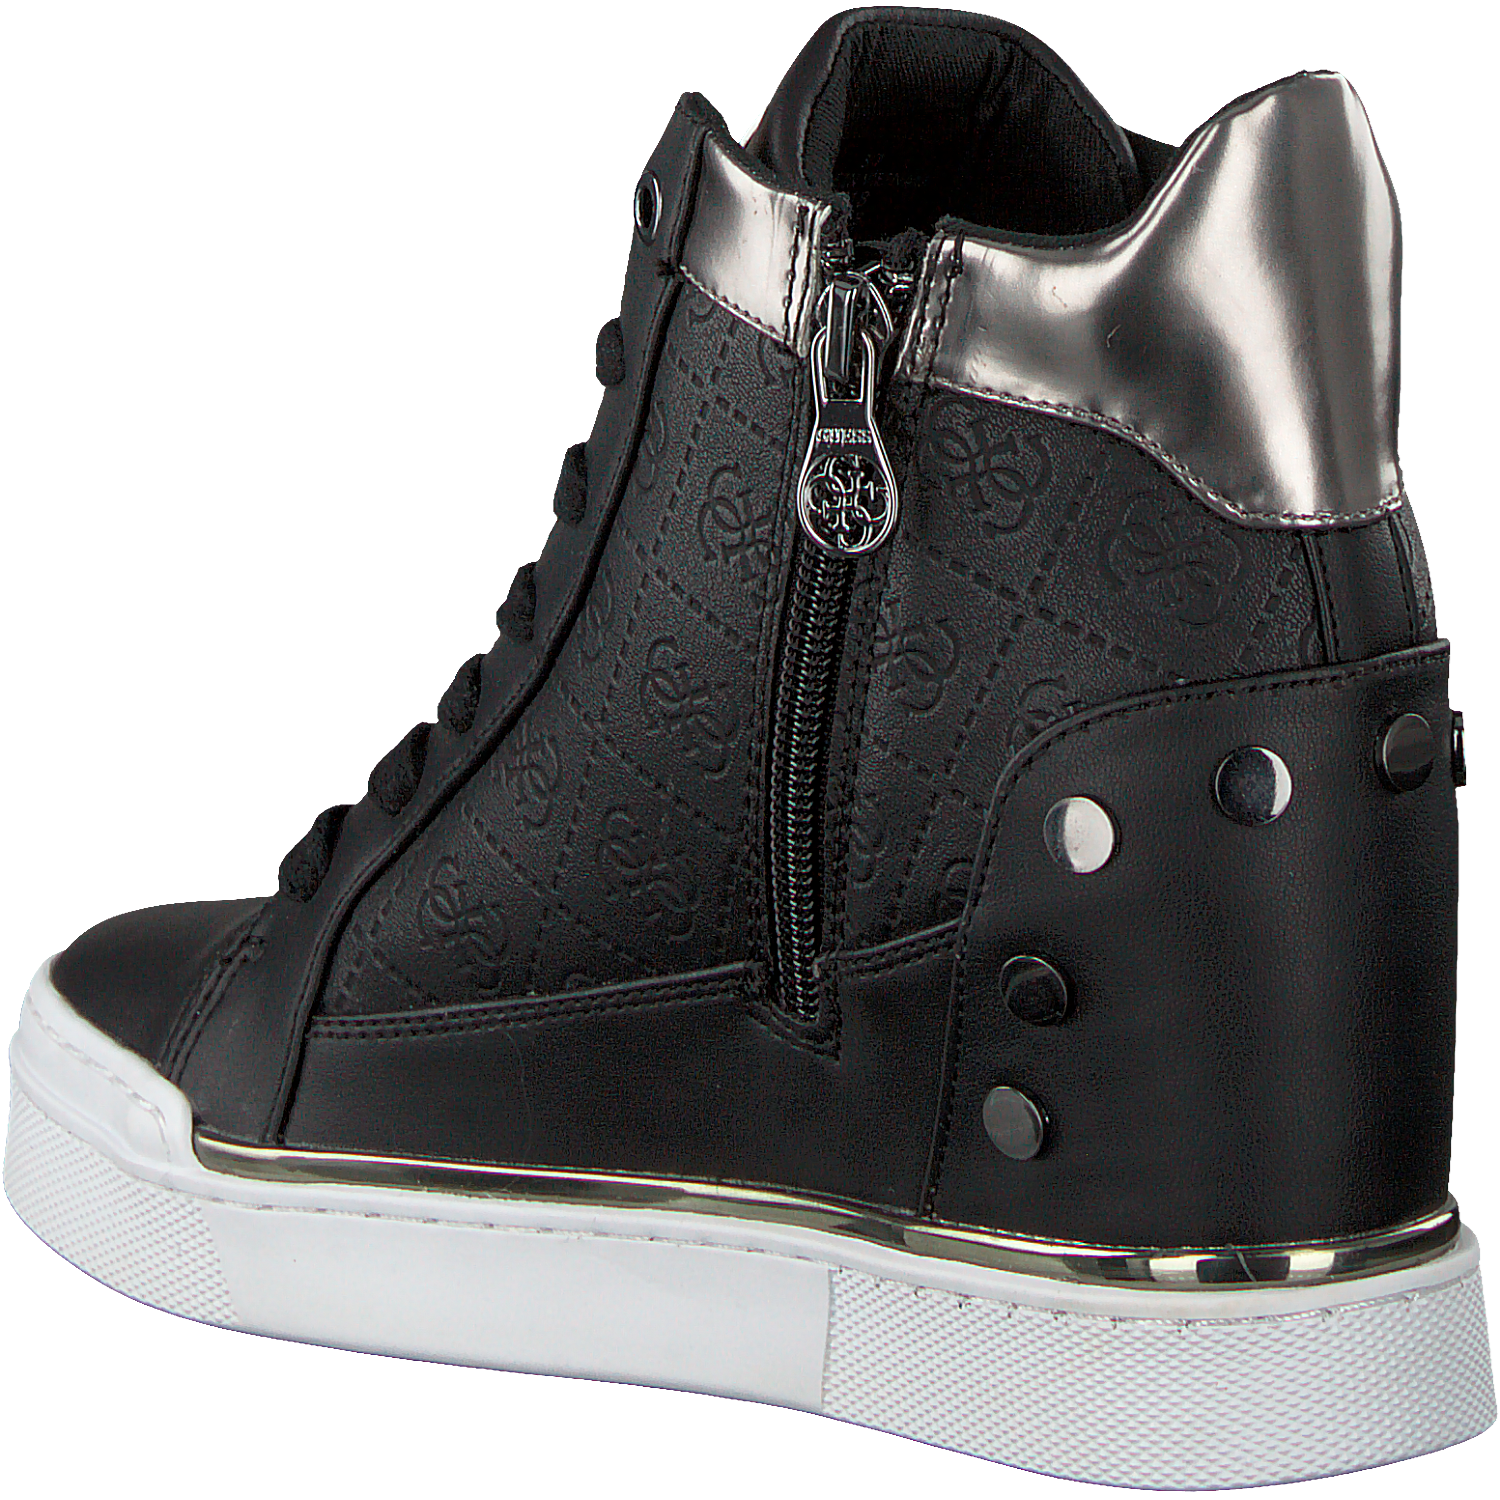 e0391af95f203 Zwarte GUESS Sneakers FINLY - Omoda.nl